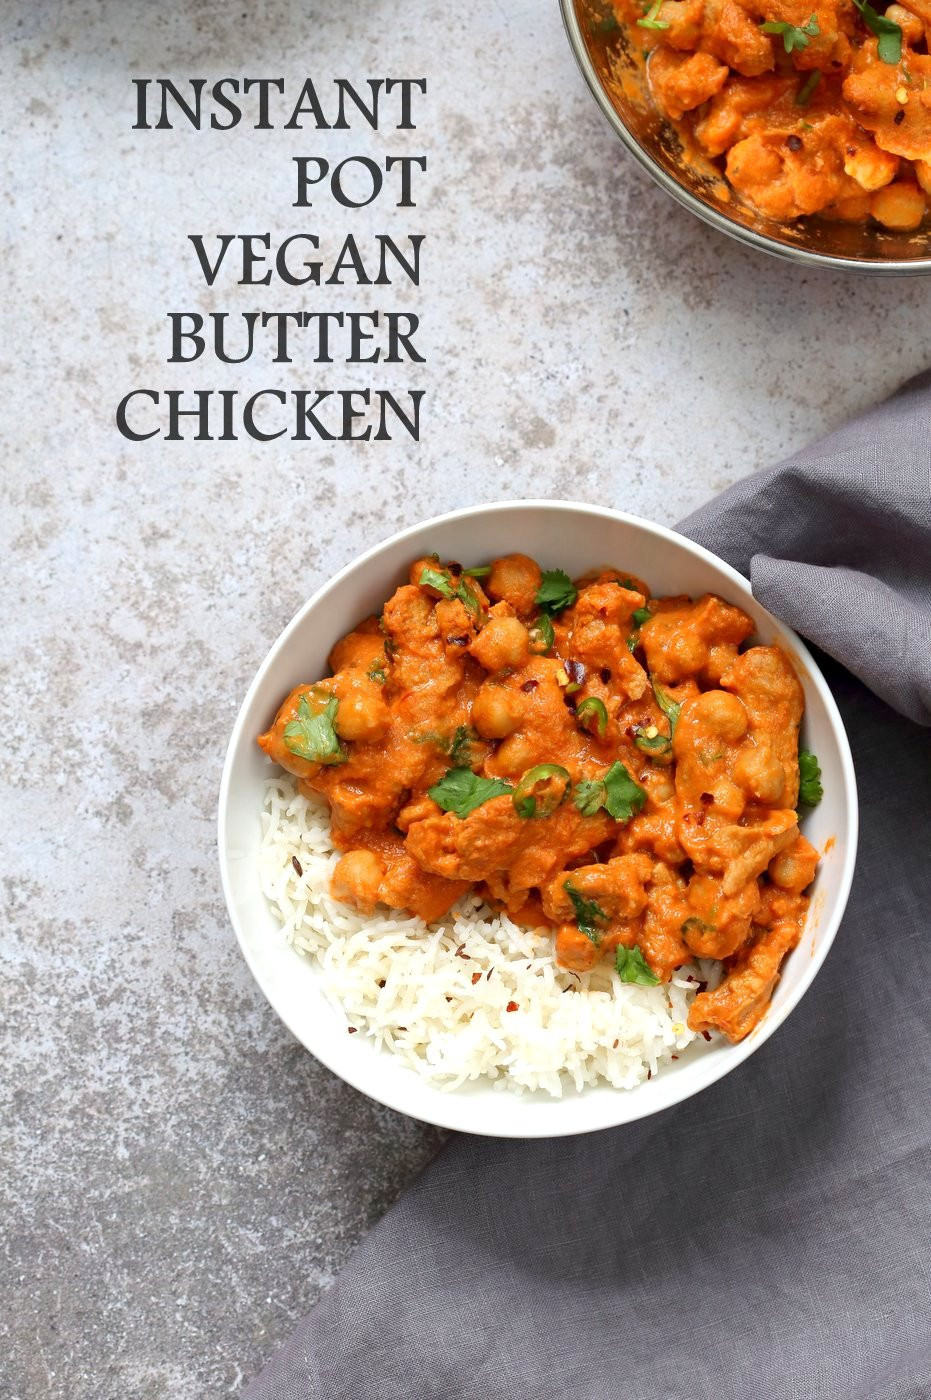 Vegan Instant Pot Recipes  Instant Pot Vegan Butter Chicken with Soy Curls and